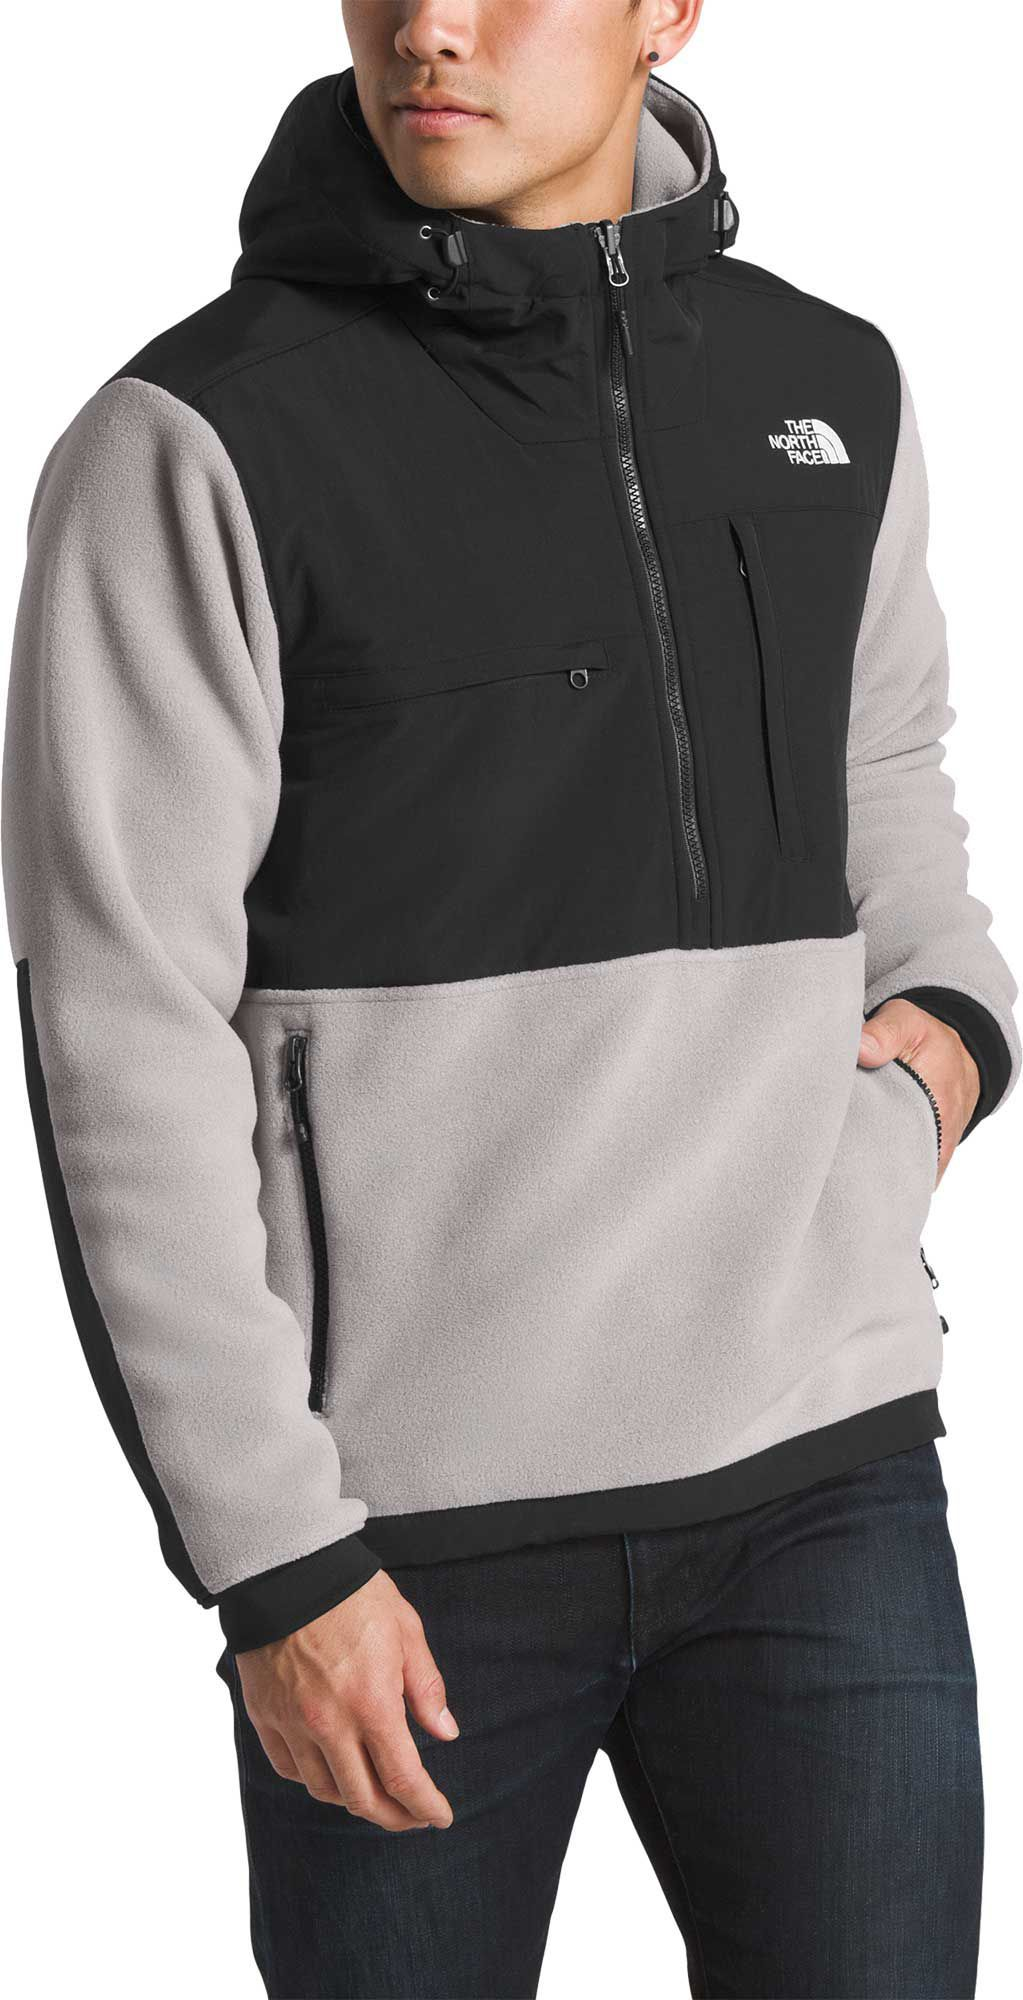 cd9bf5489 The North Face Men's Denali Fleece Anorak, Gray | Products in 2019 ...